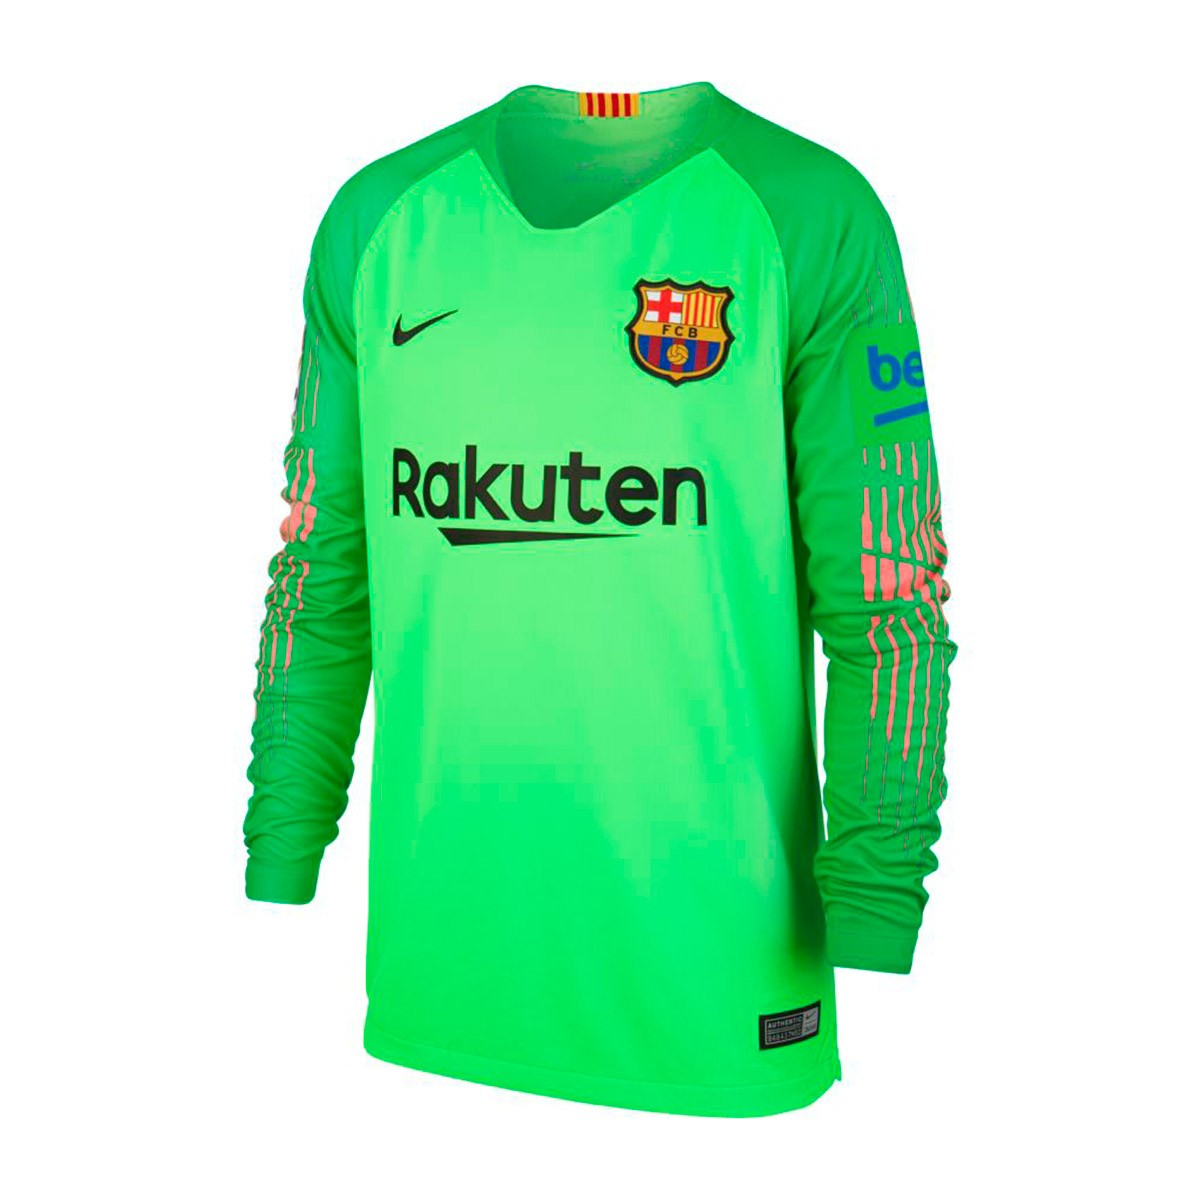 f928421c60624 Jersey Nike Kids Goalkeeper FC Barcelona Stadium 2018-2019 Green ...